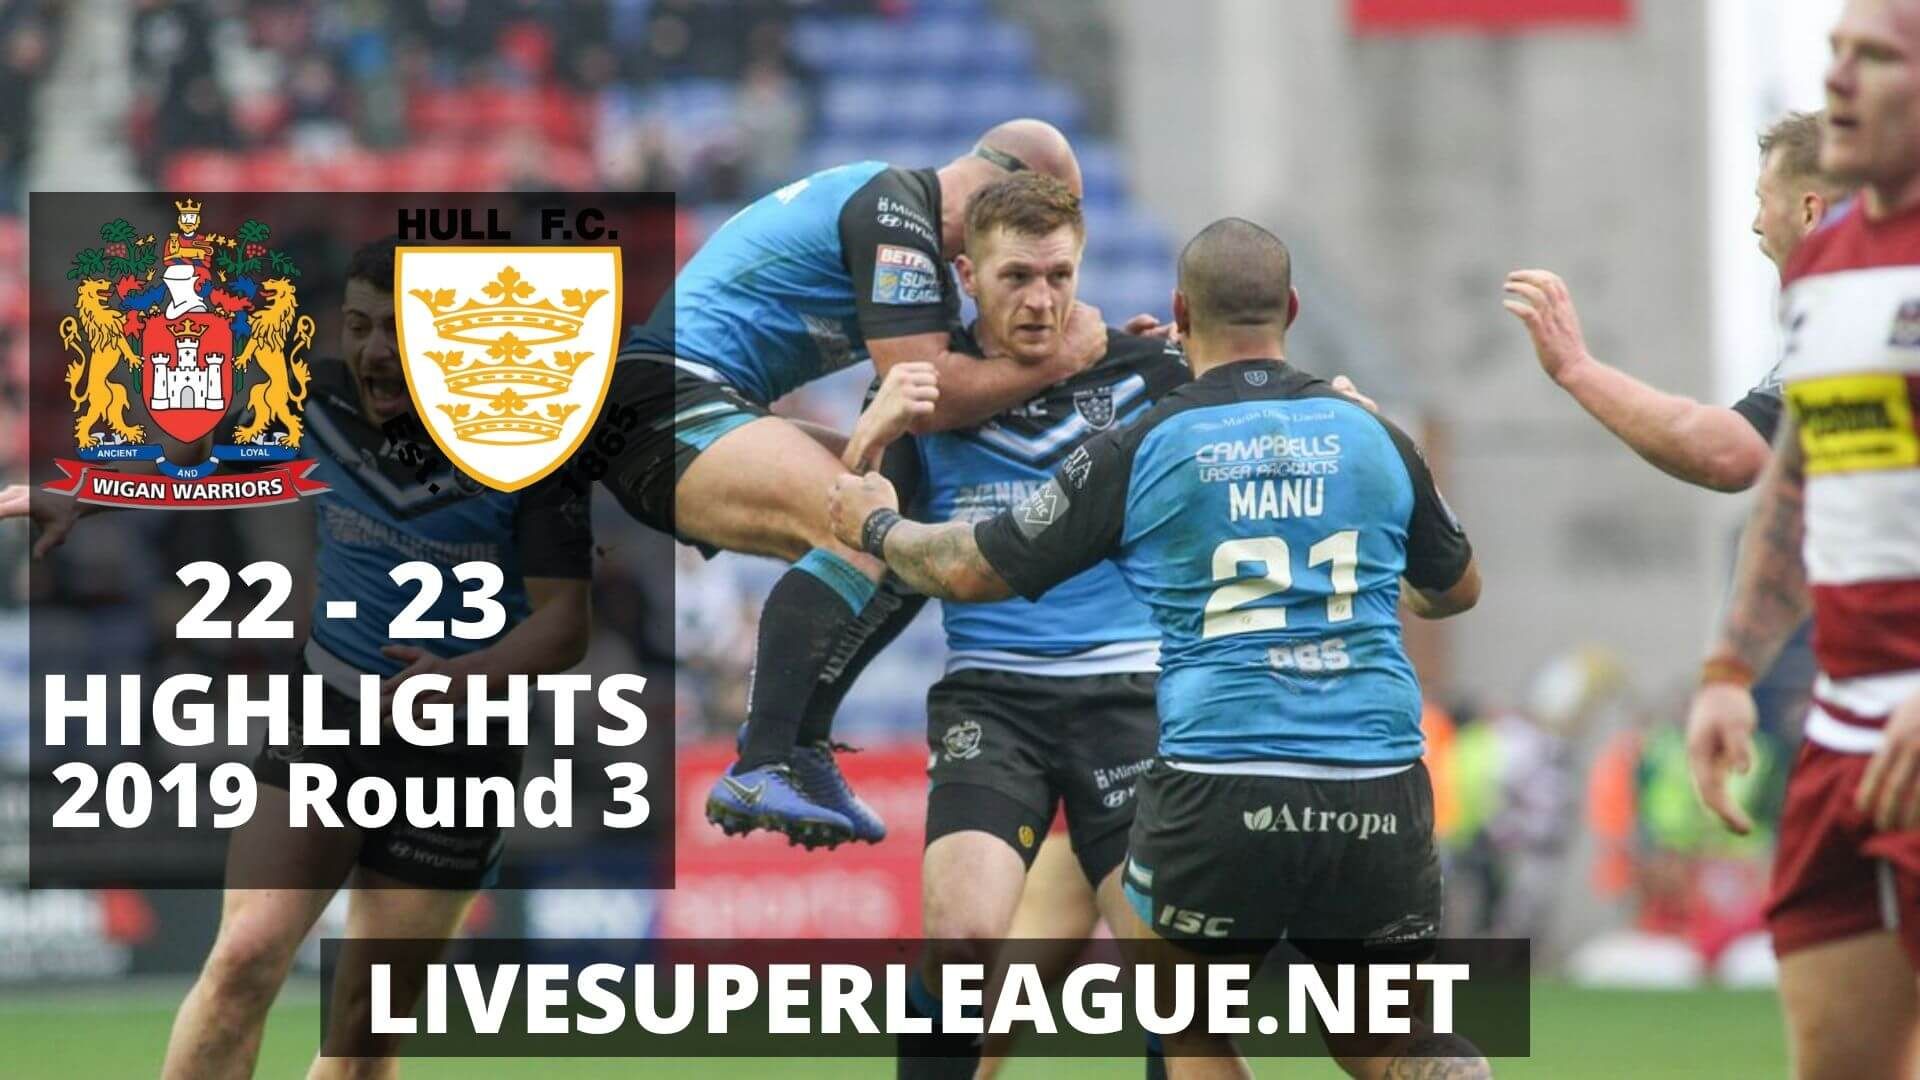 Wigan Warriors Vs Hull F.C Highlights 2019 Round 3